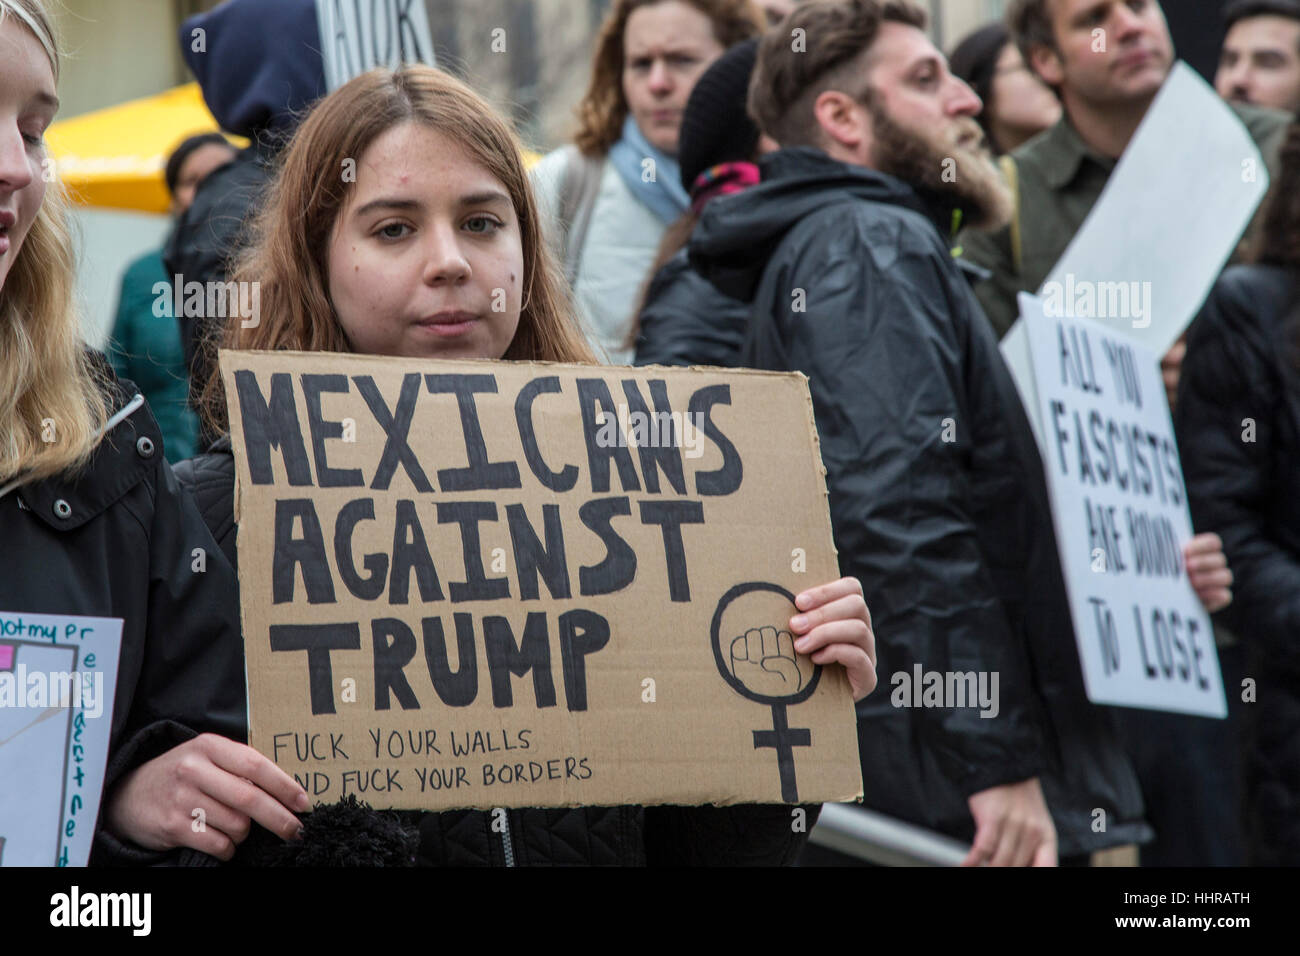 Washington, USA. 20th January, 2017.  Protesters at the inauguration of President Donald Trump. Credit: Jim West/Alamy - Stock Image